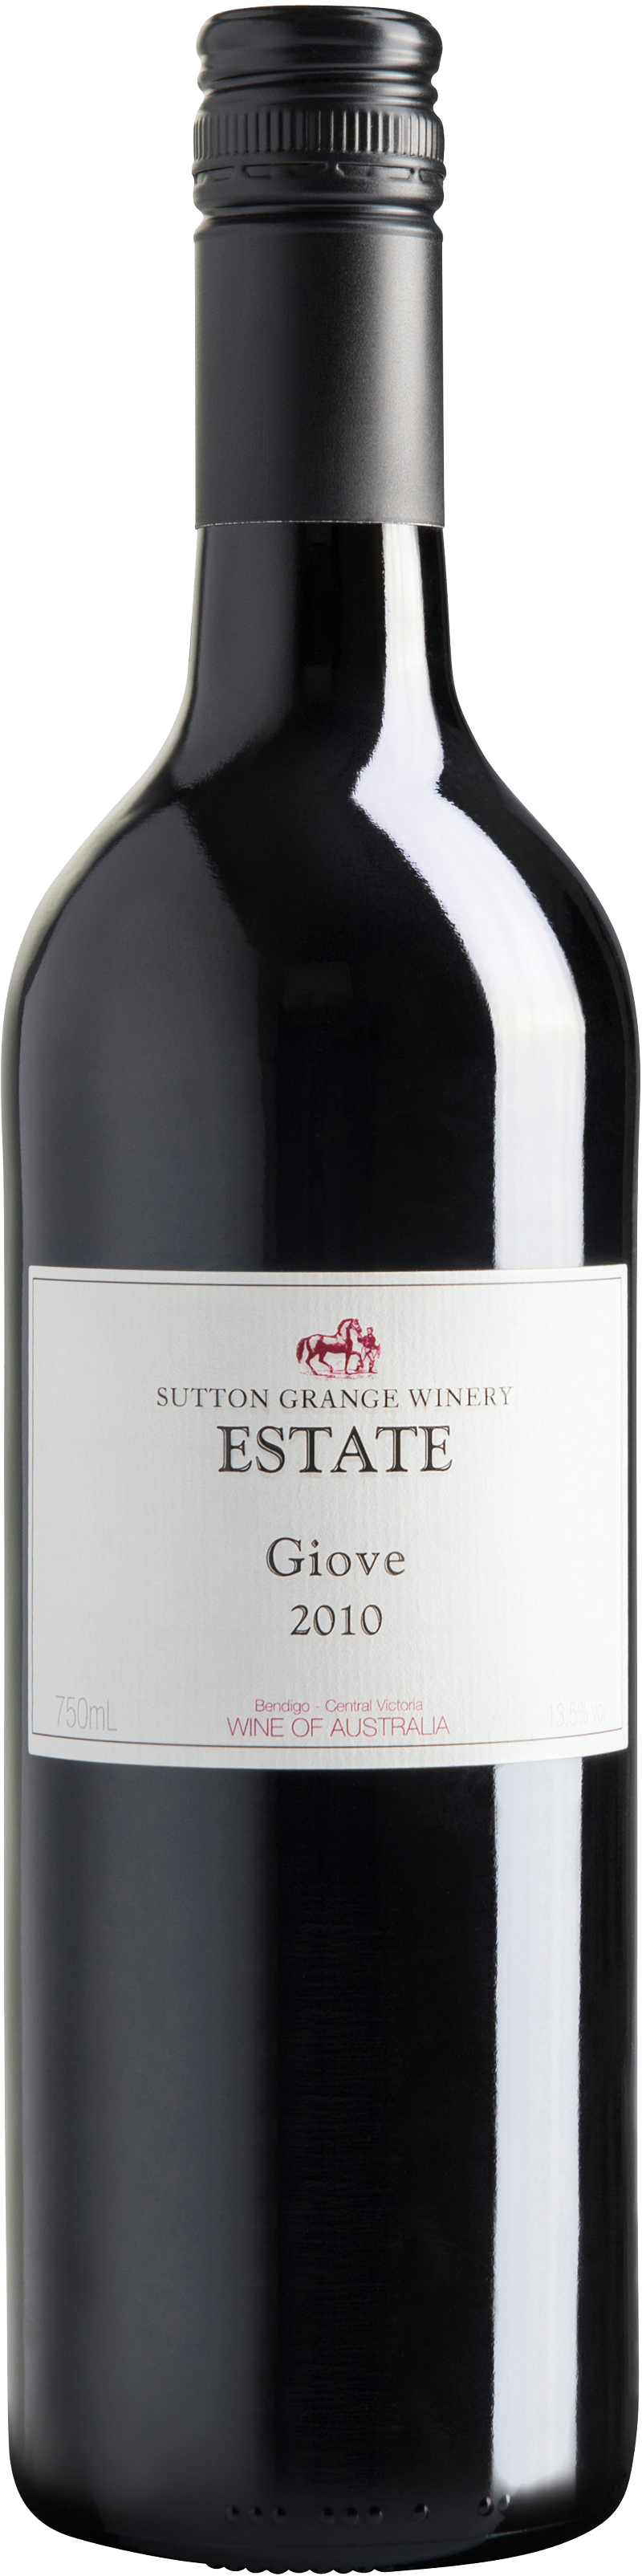 2010 Sutton Grange Estate Giove (Sangiovese Blend)